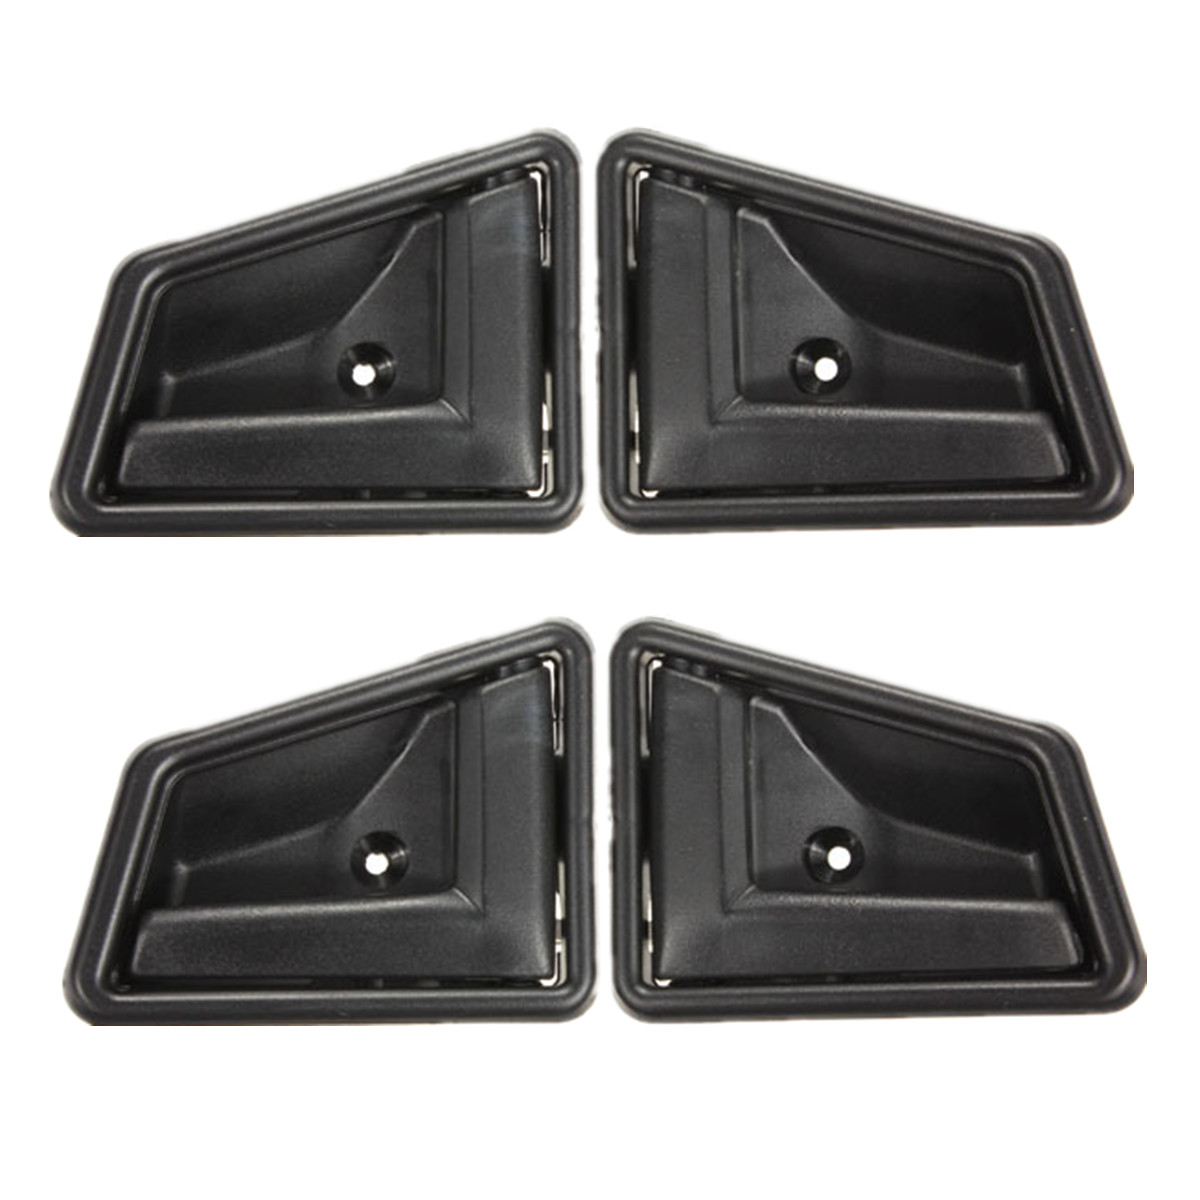 4 pcs Inner Inside Interior Door Handles For Suzuki Sidekick Geo Tracker 1991-1998